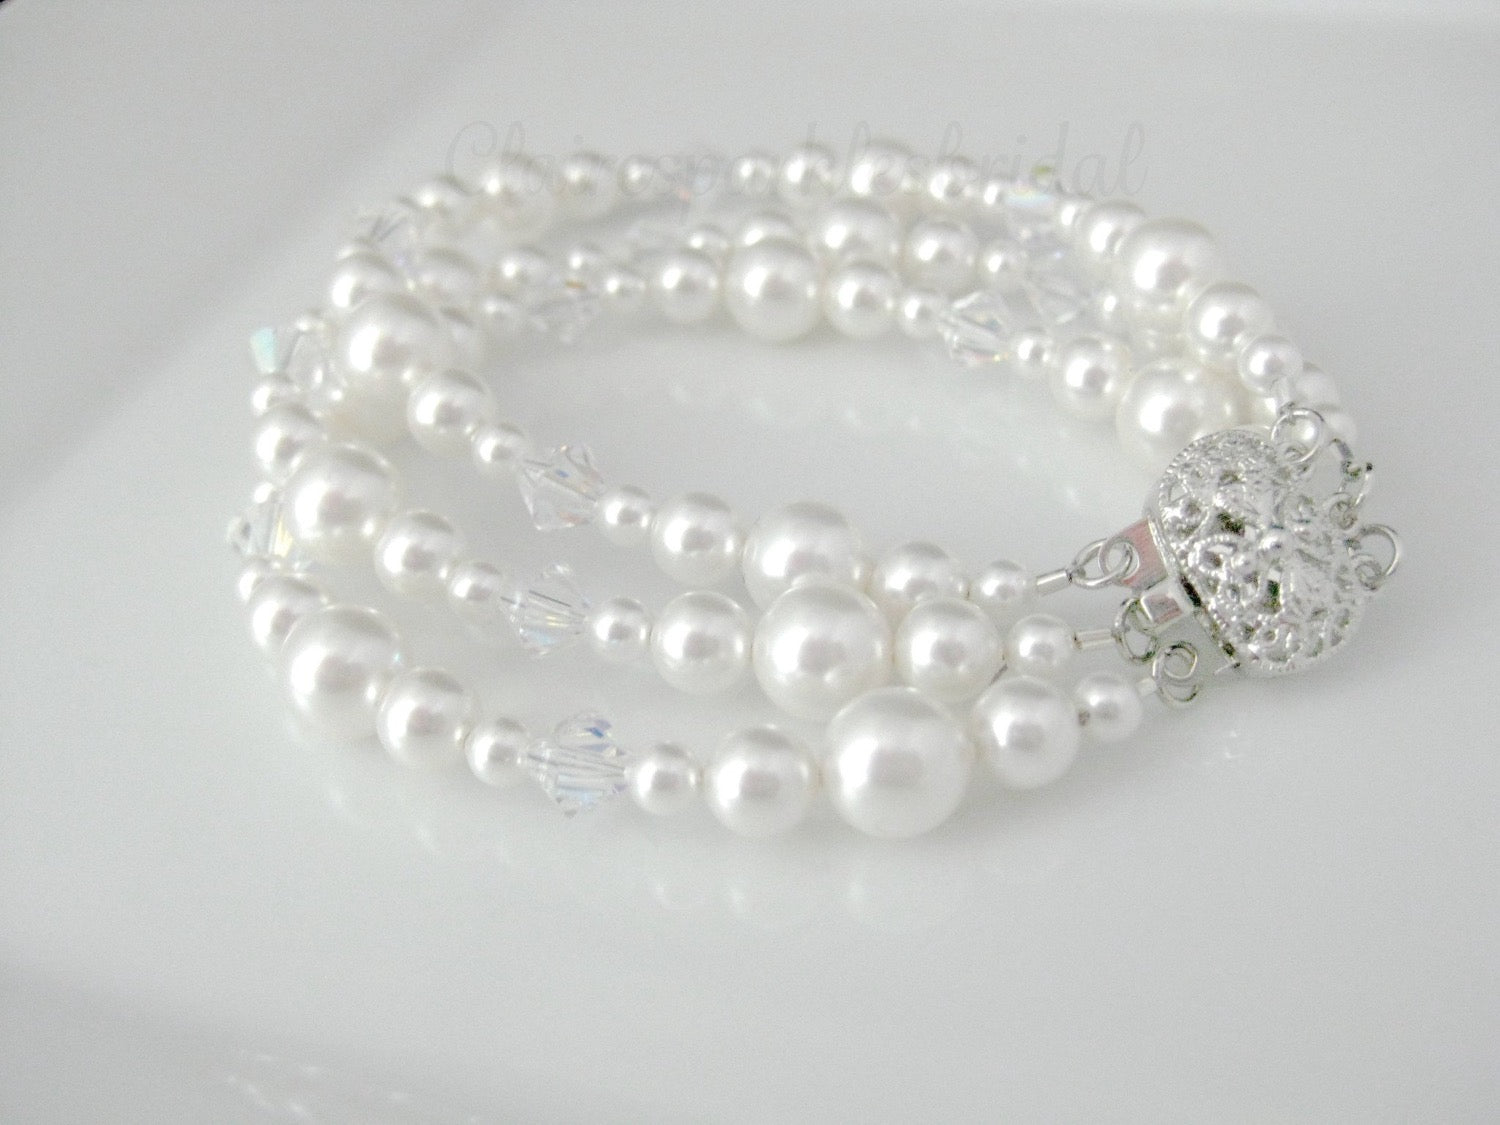 bridal jewelry pearl and crystal bracelet - Clairesbridal - 3